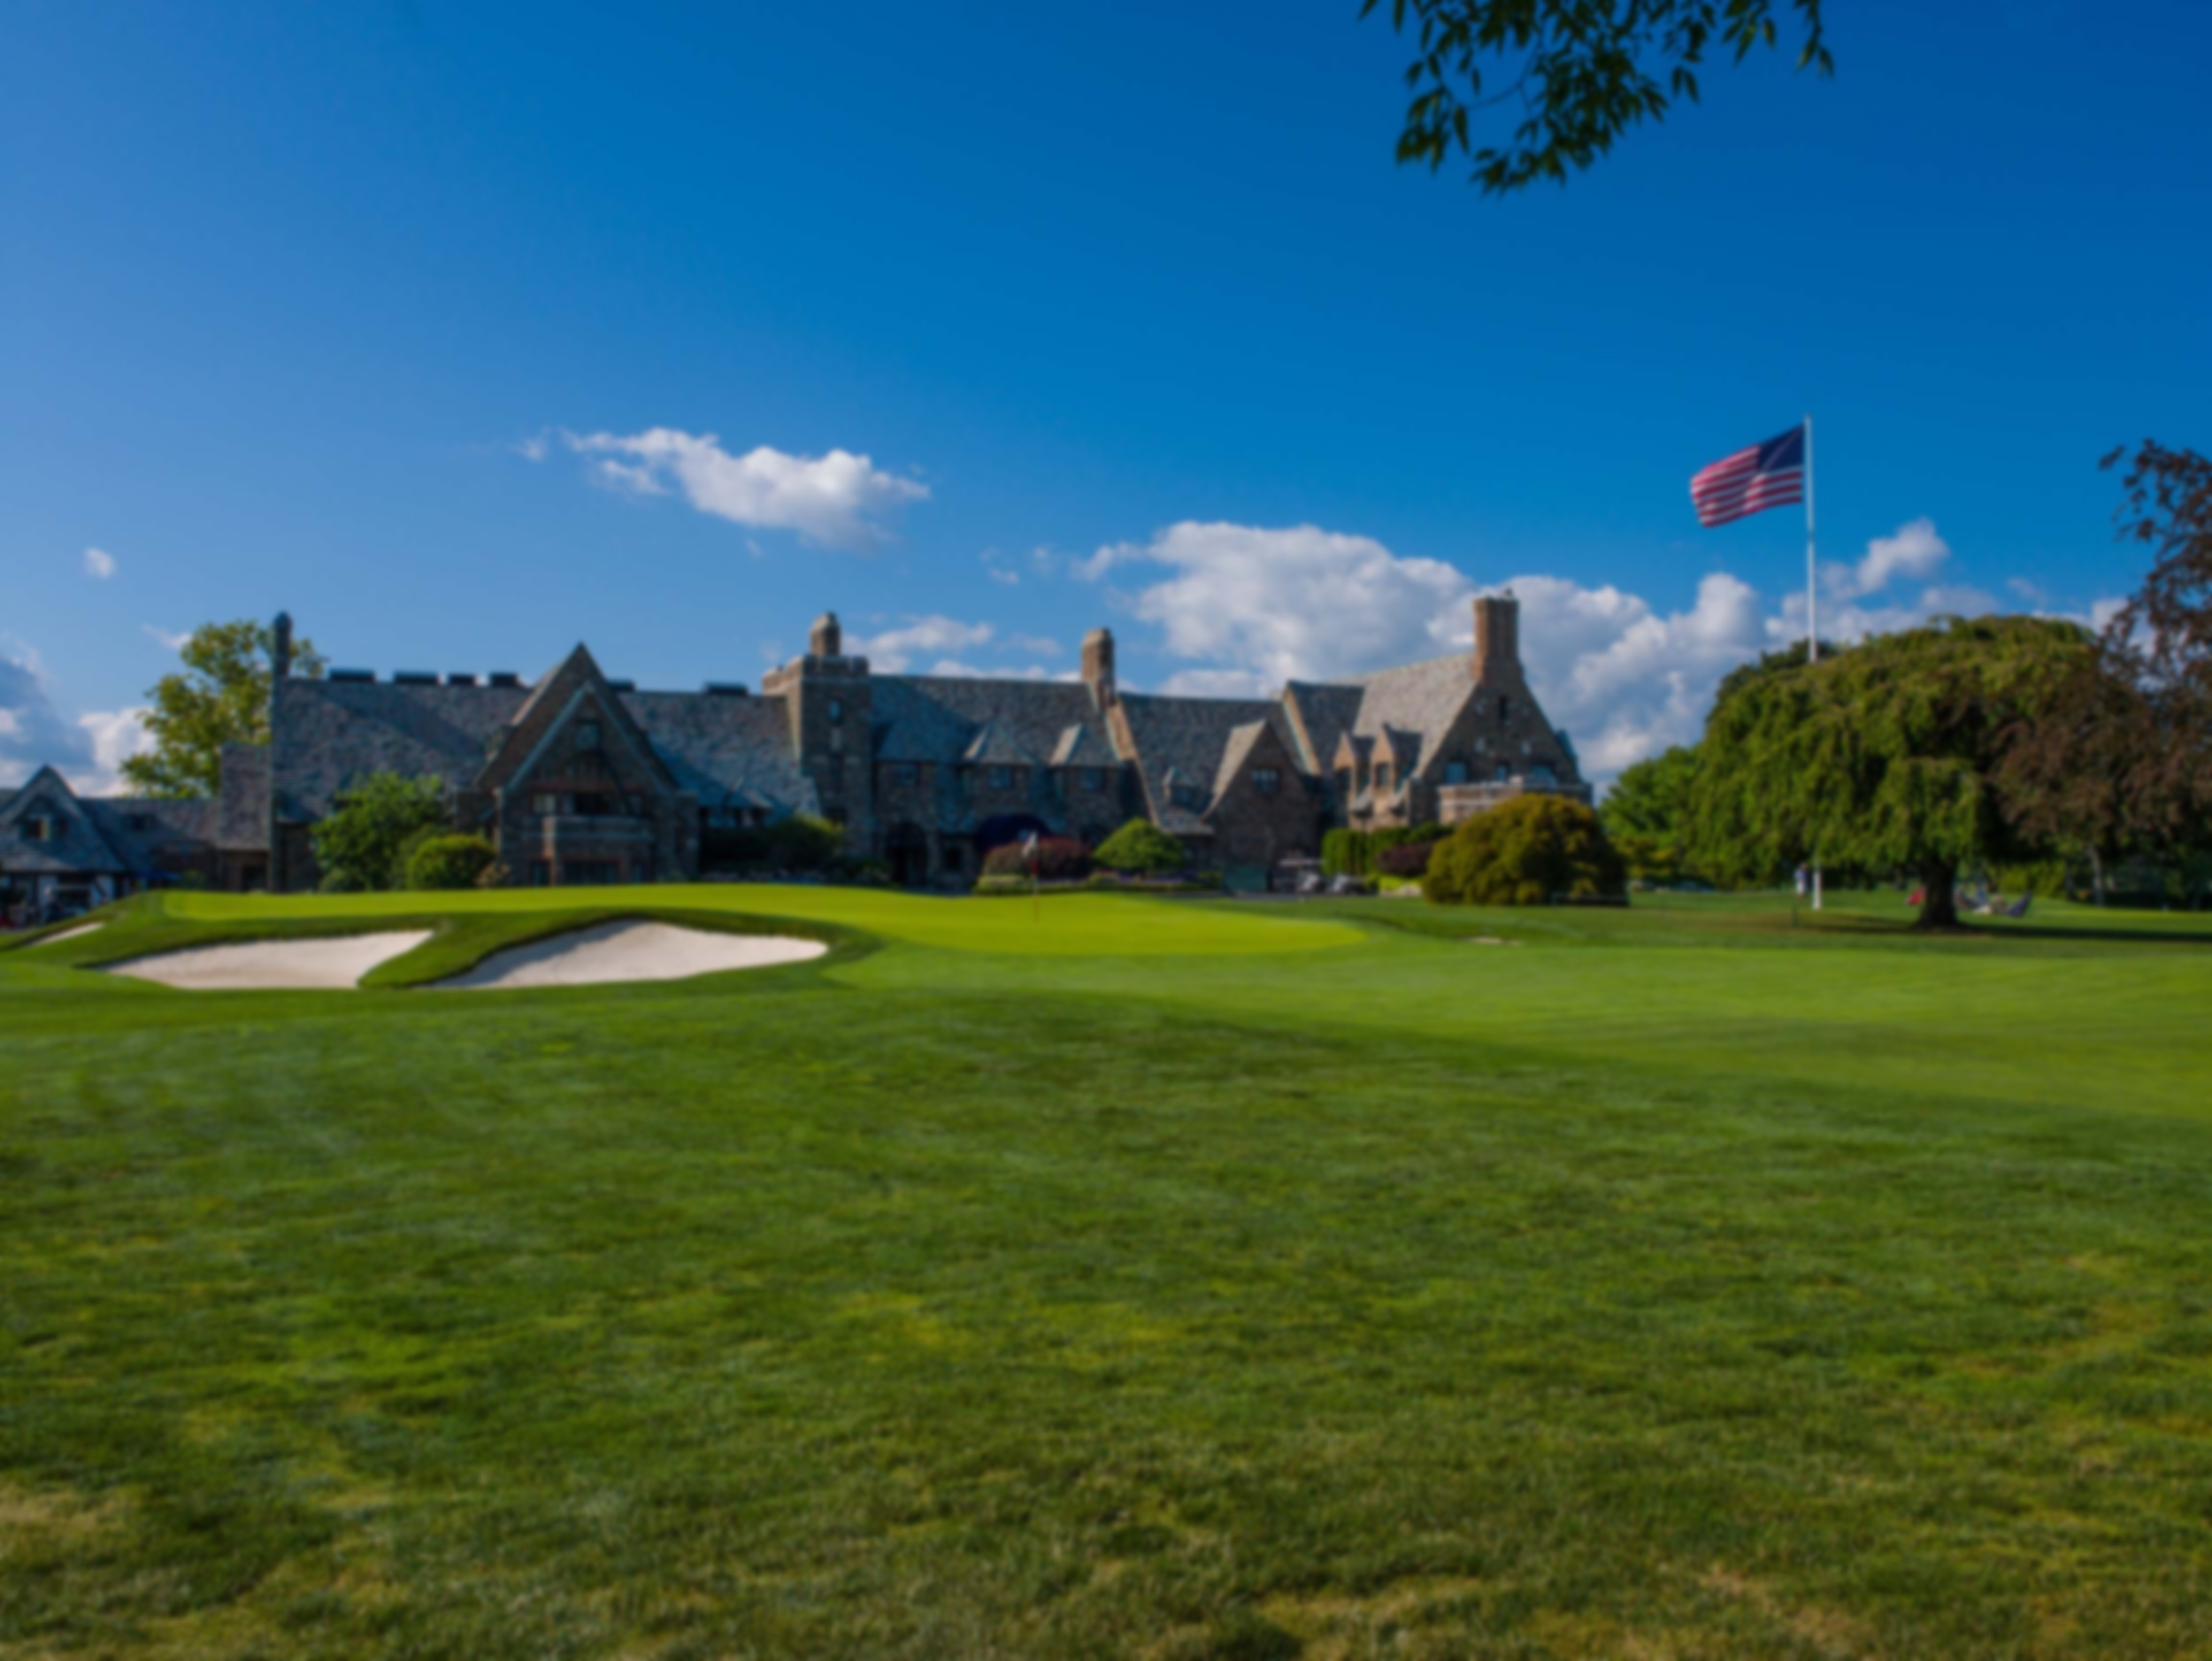 The Gladney Cup - All tee times for Winged Foot East have been booked. Please contact us for more information